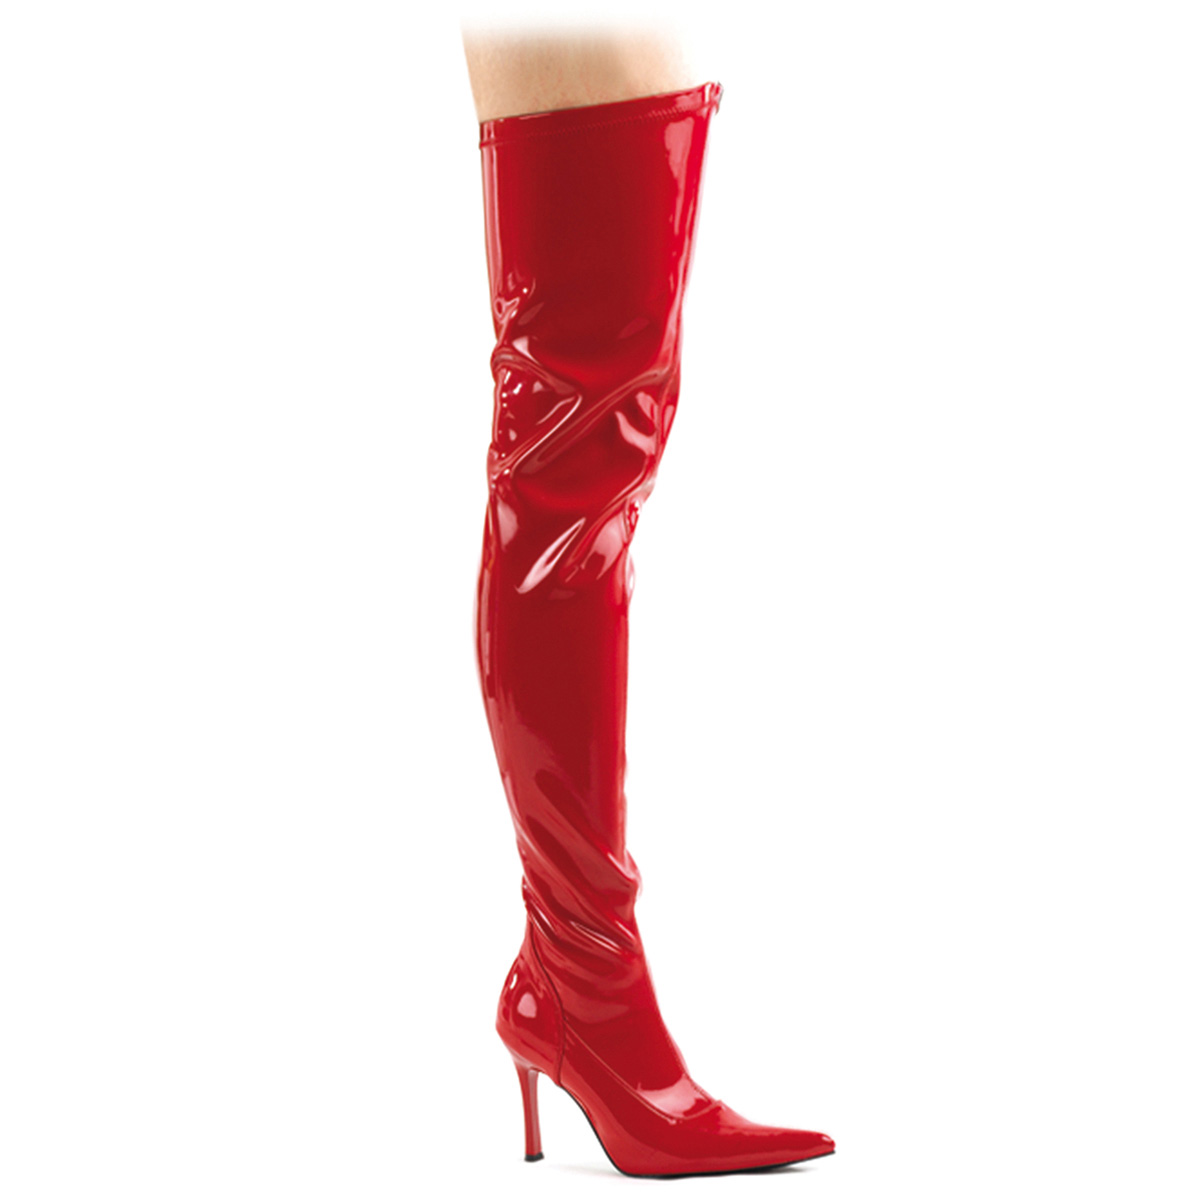 "FUNTASMA Red Str Pat Thigh Boot, 3 3/4"" at Sears.com"